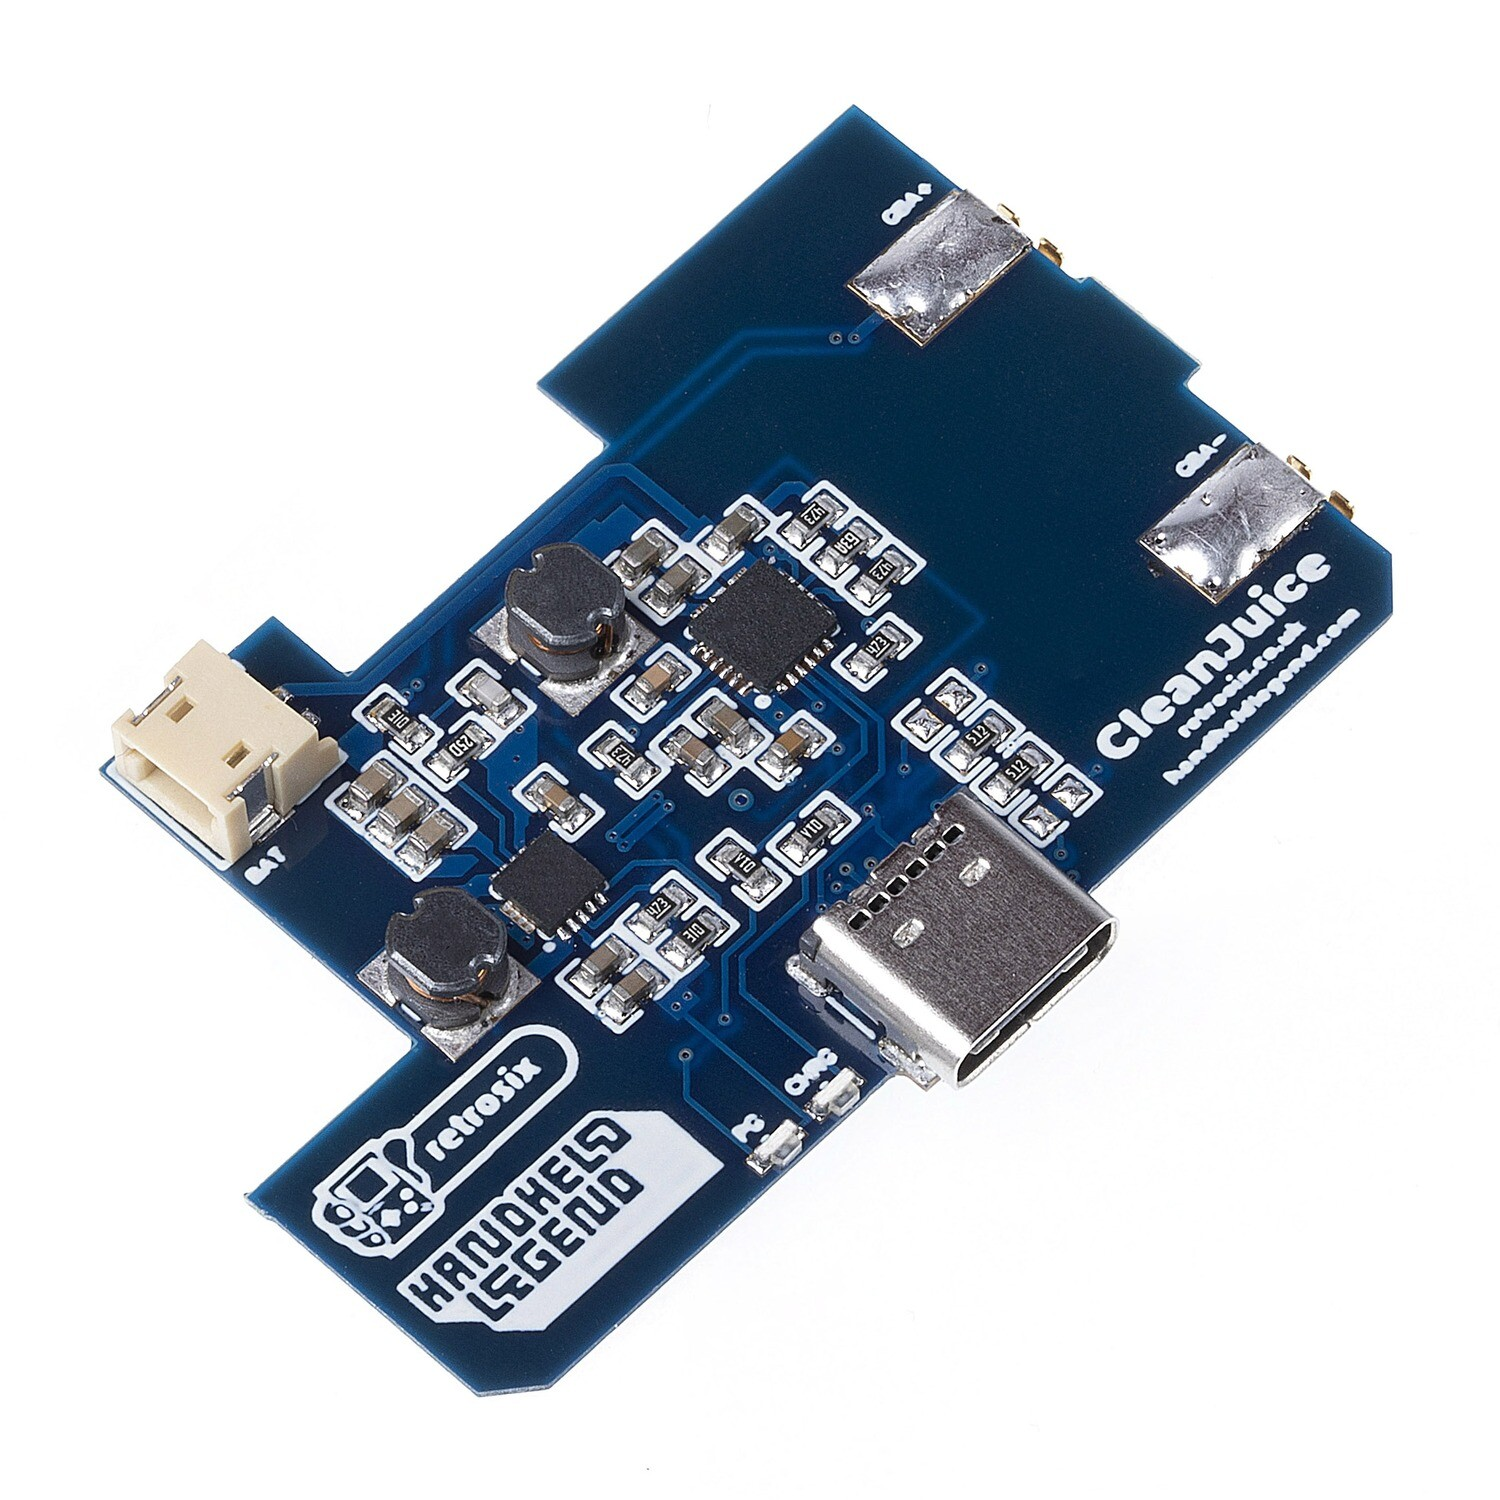 CleanJuice USB-C Board Only V1.1 (Game Boy Advance)